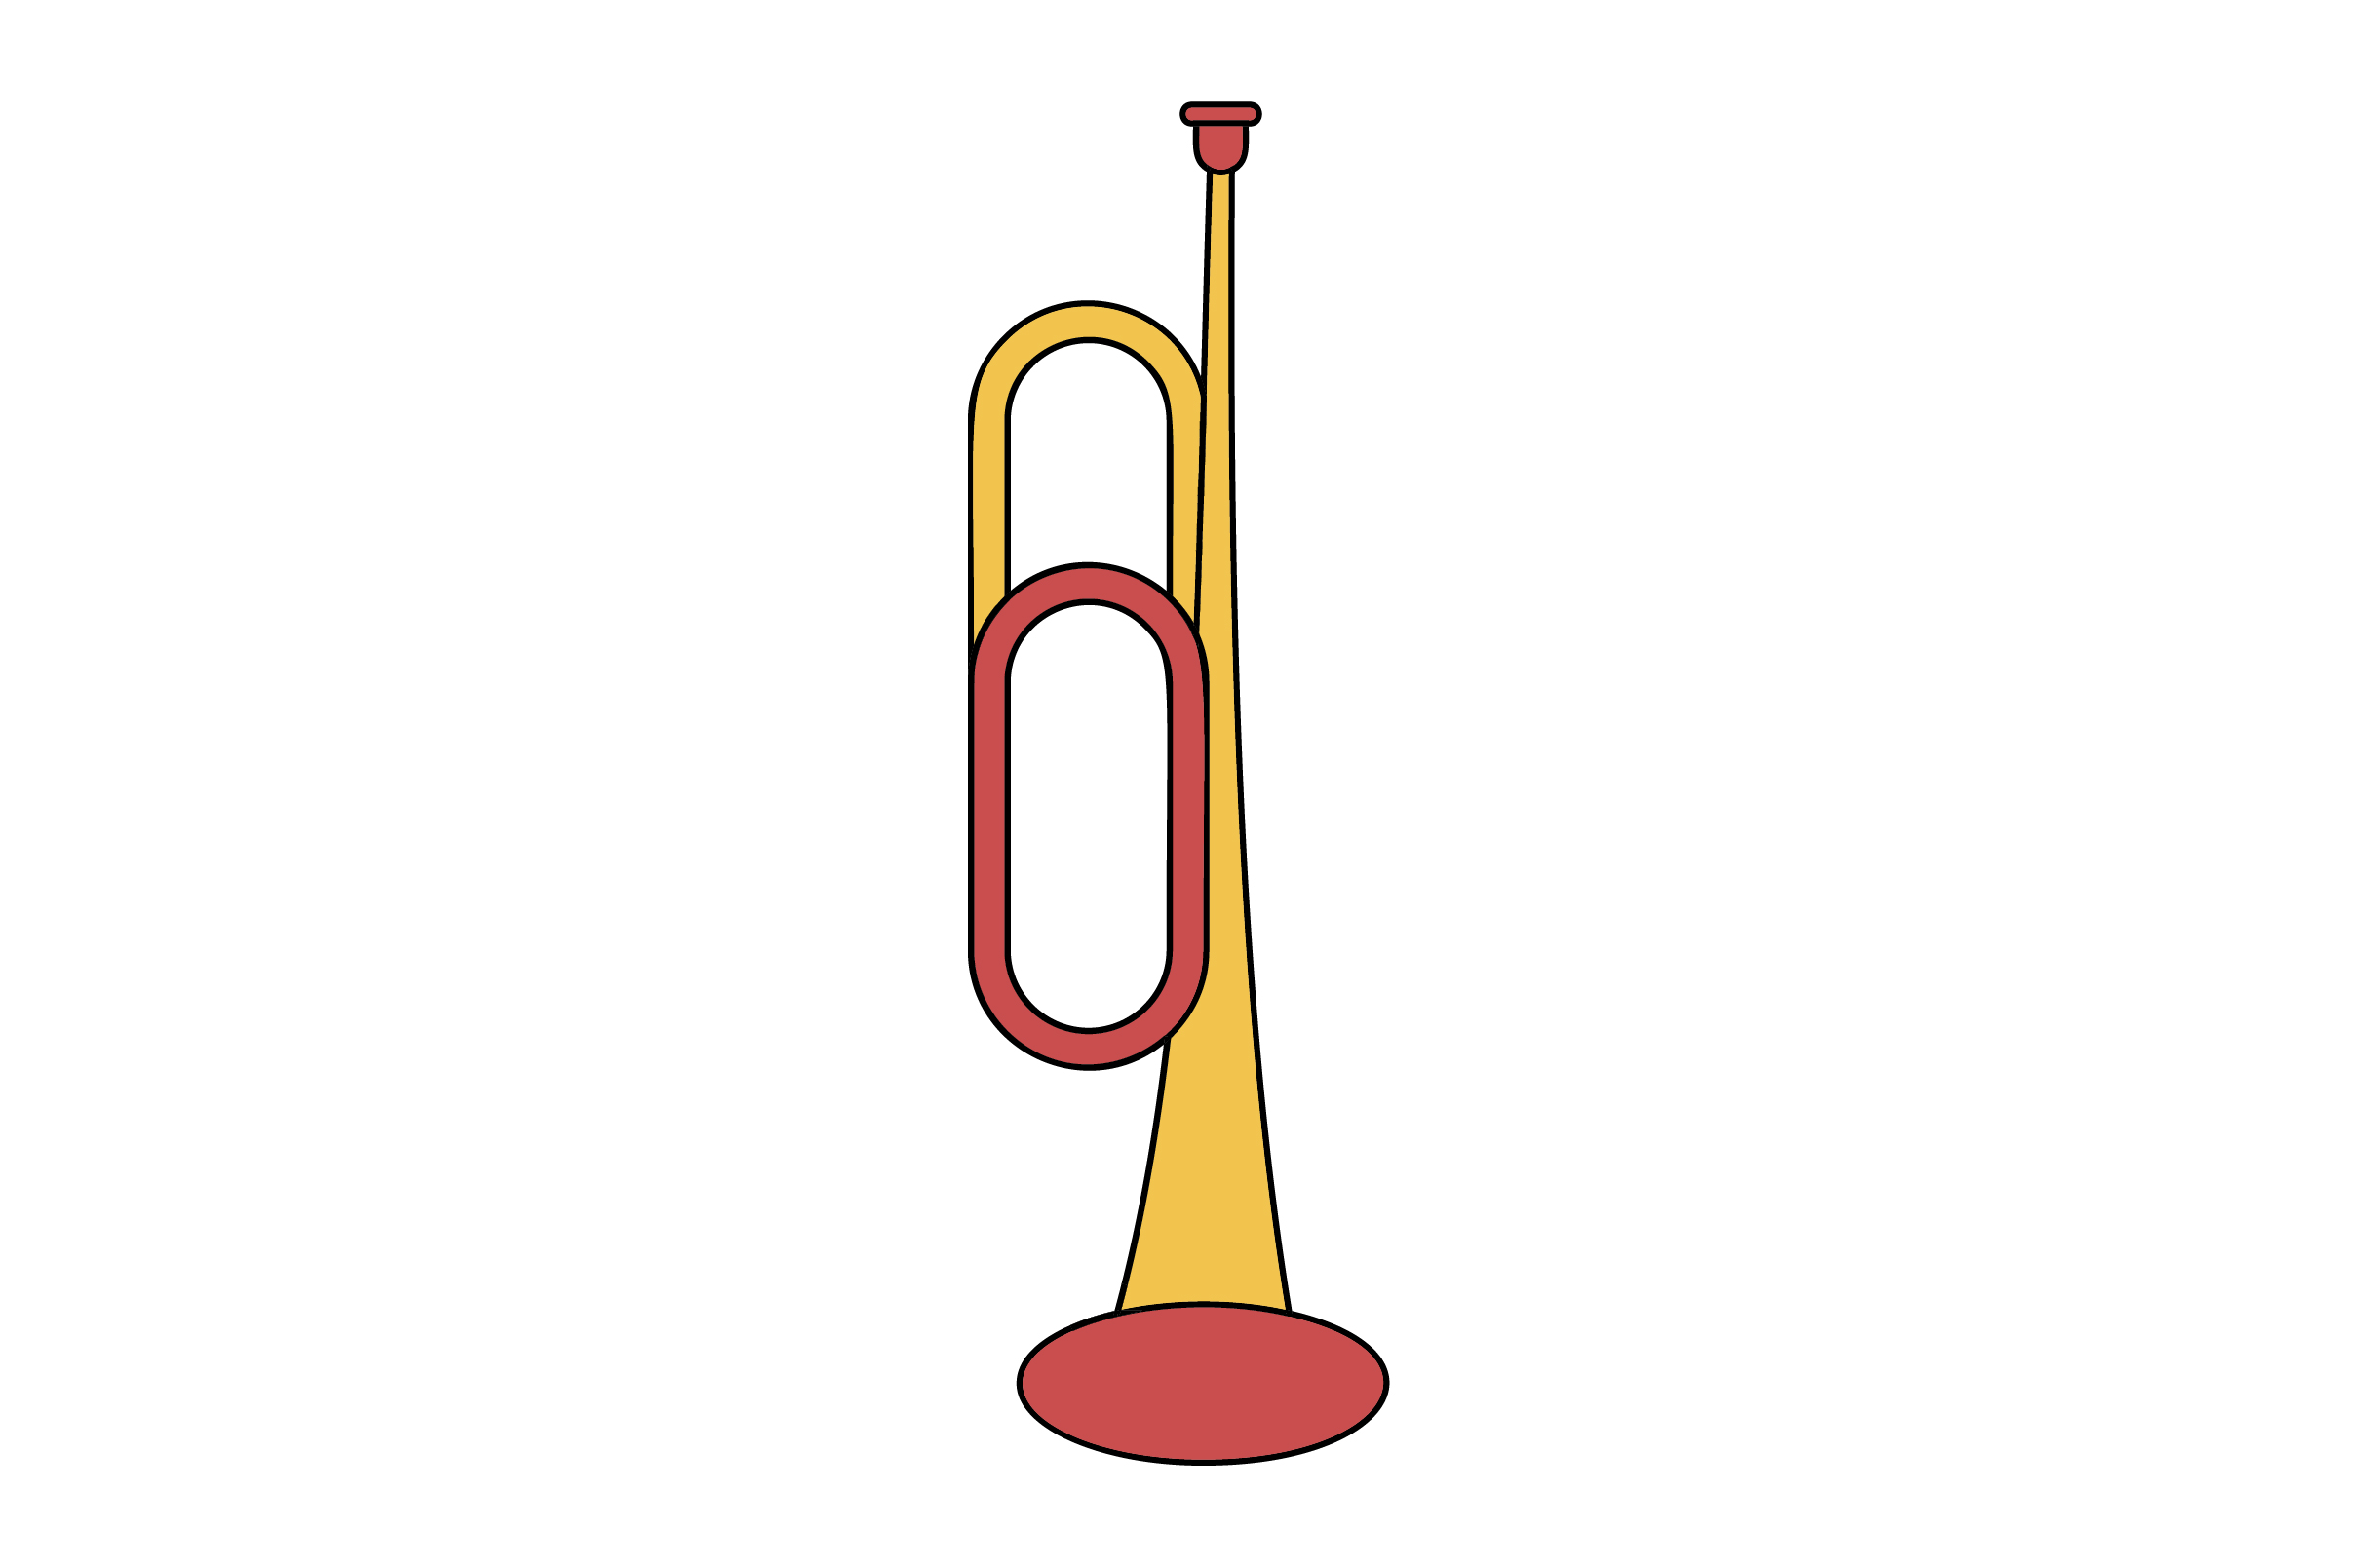 Trumpet Liner Fill Icon Vector Graphic By Riduwan Molla